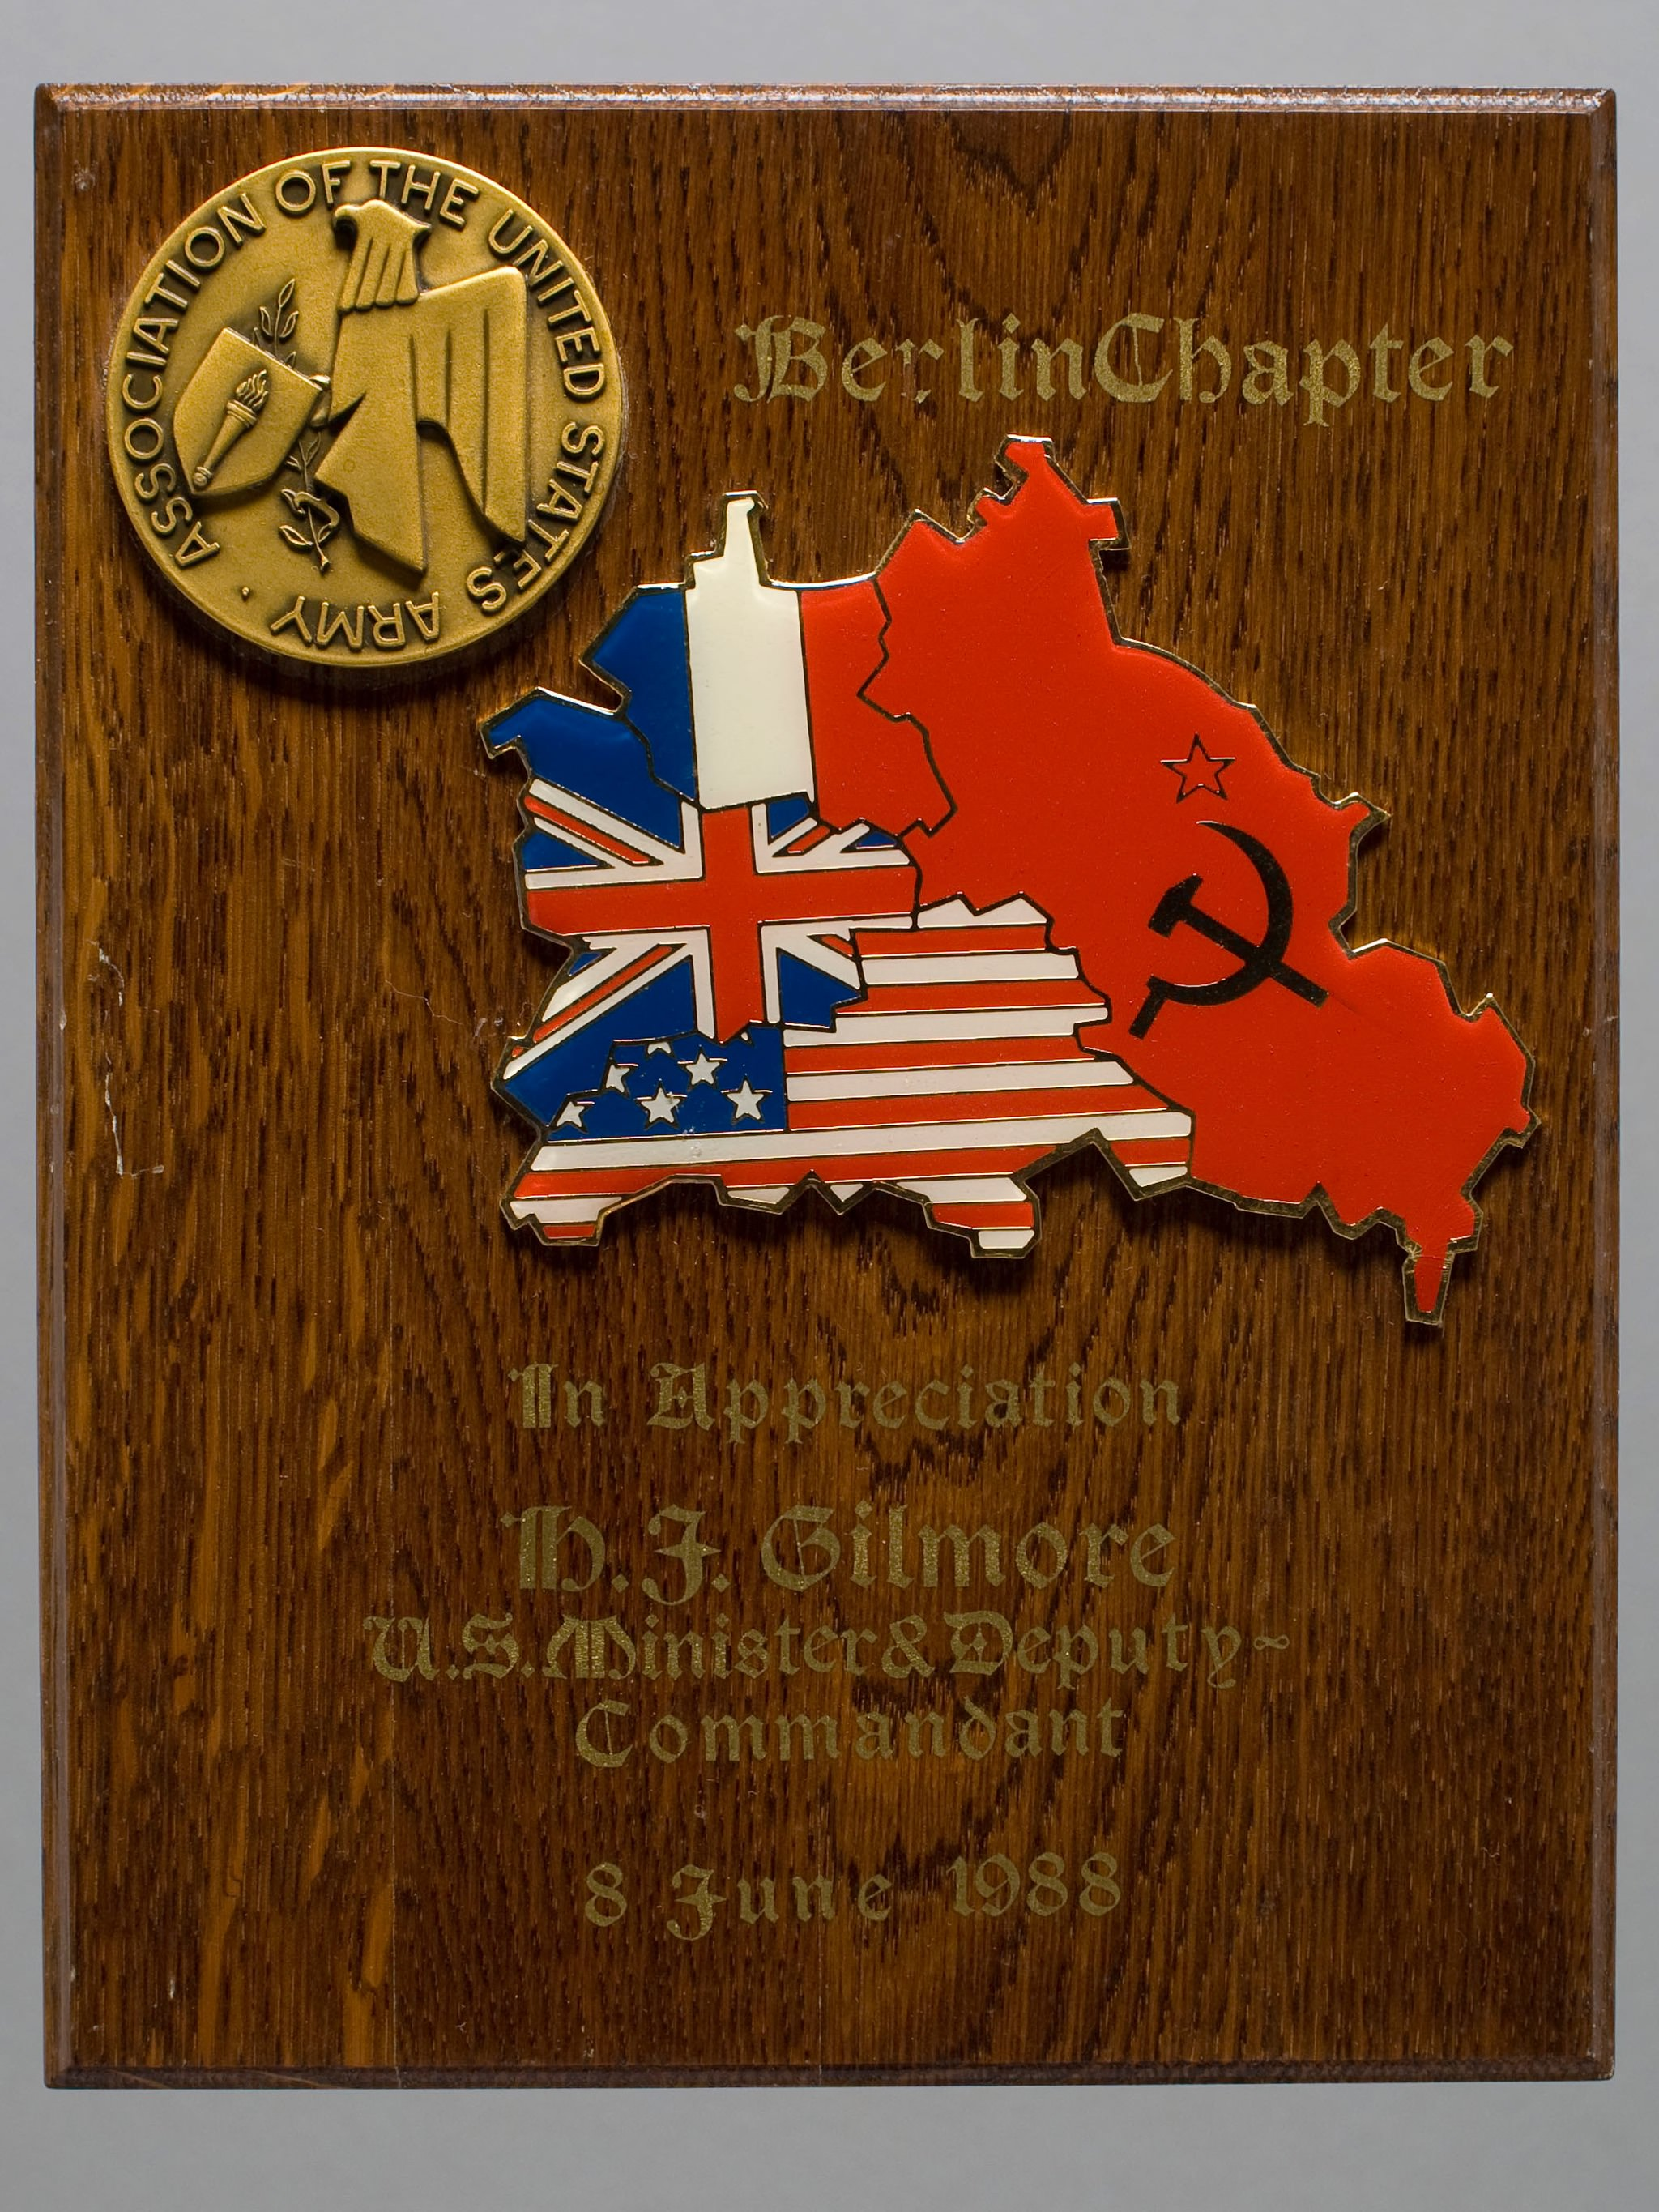 Image of a plaque awarded to U.S. Minister and Deputy Commandant in West Berlin Harold J. Gilmore